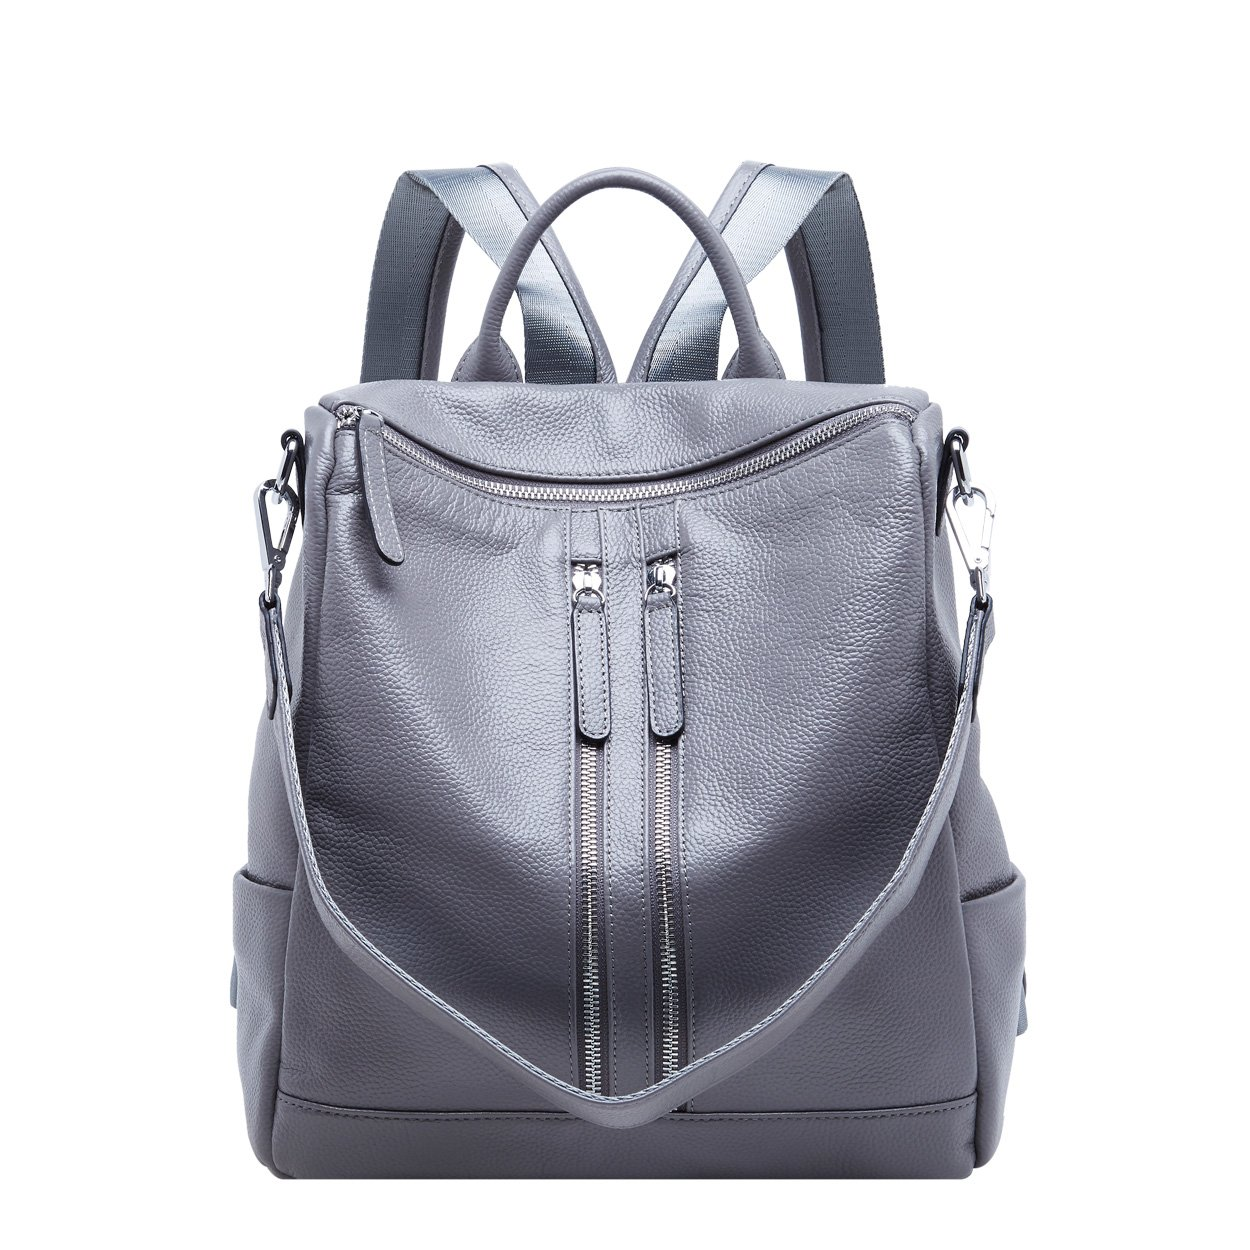 BOYATU Convertible Genuine Leather Backpack Purse for Women Fashion Travel Bag (Grey-03)